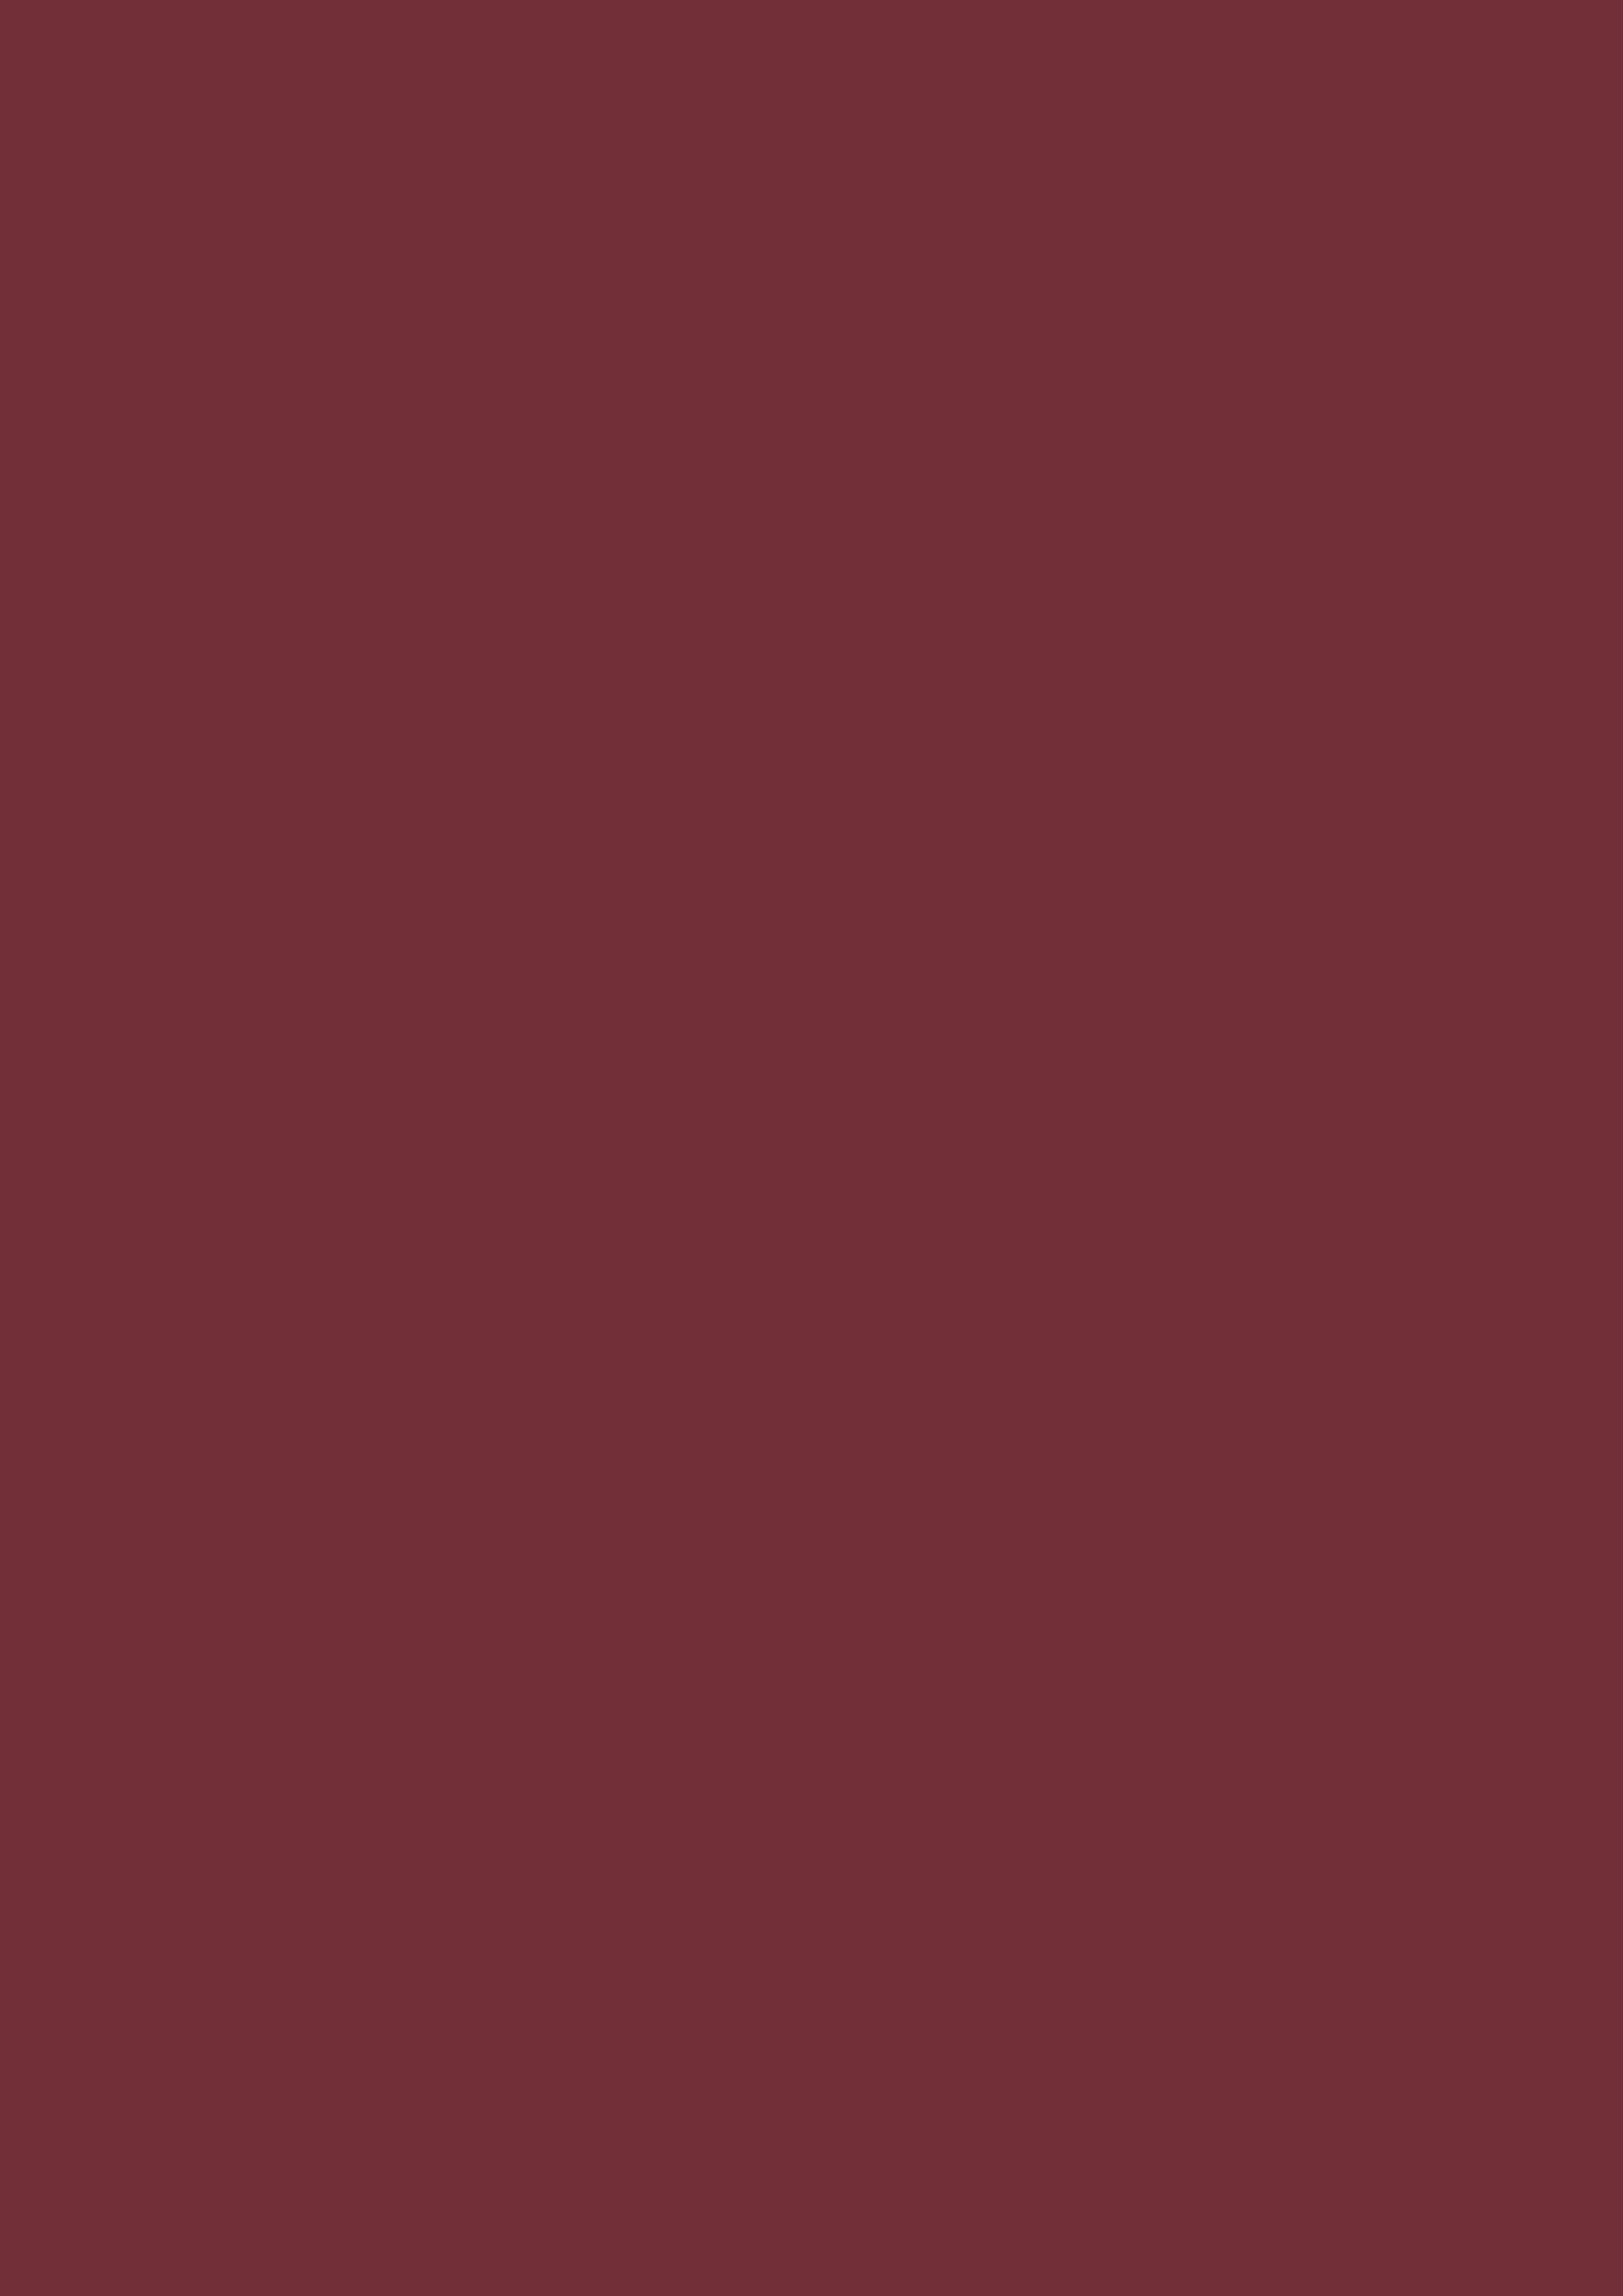 2480x3508 Wine Solid Color Background